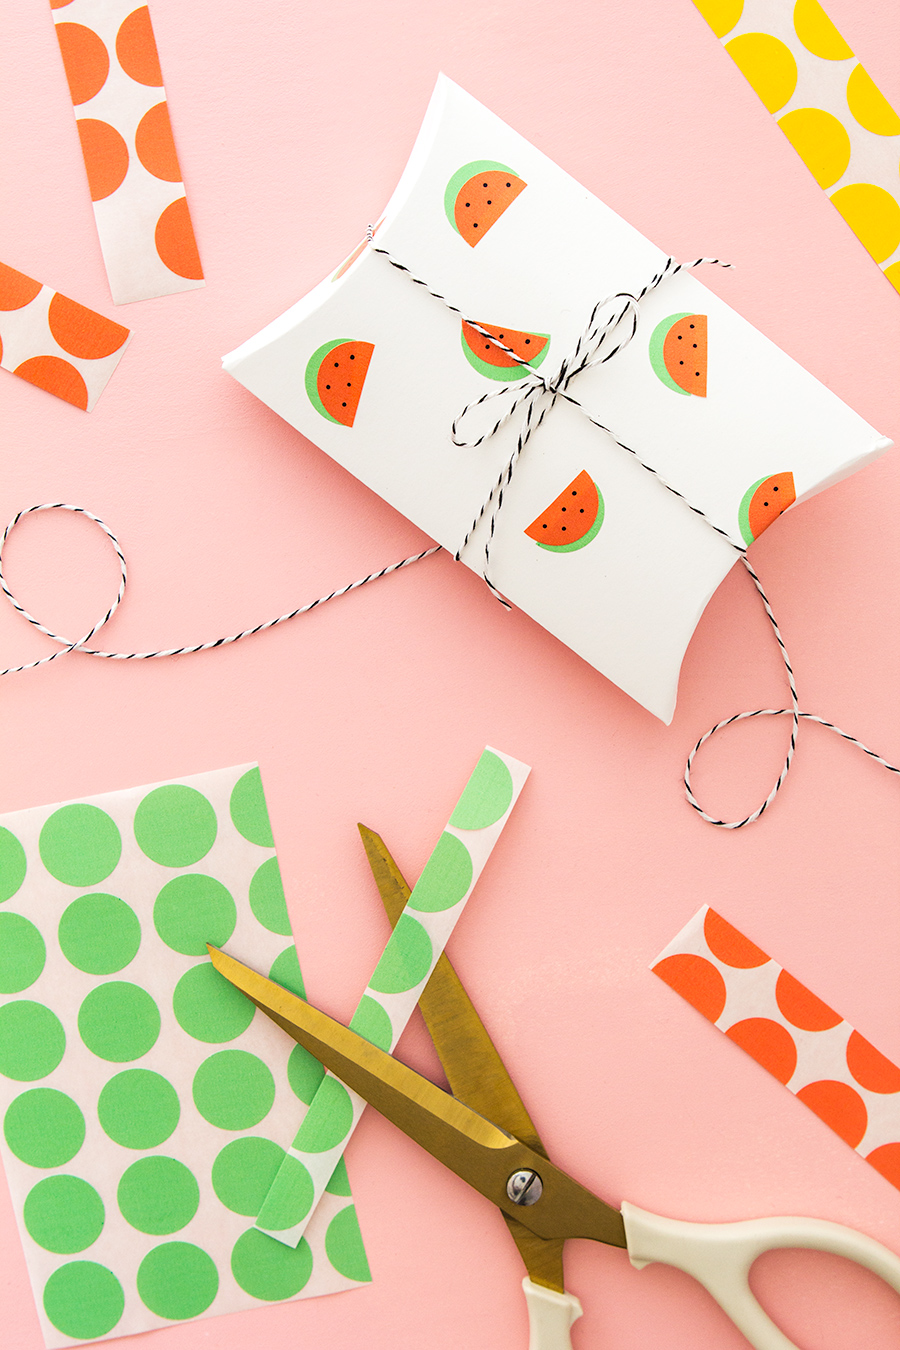 Use office color coding labels to instantly create cute watermelon stickers! Click through for the video tutorial on making these fun watermelon gift boxes.